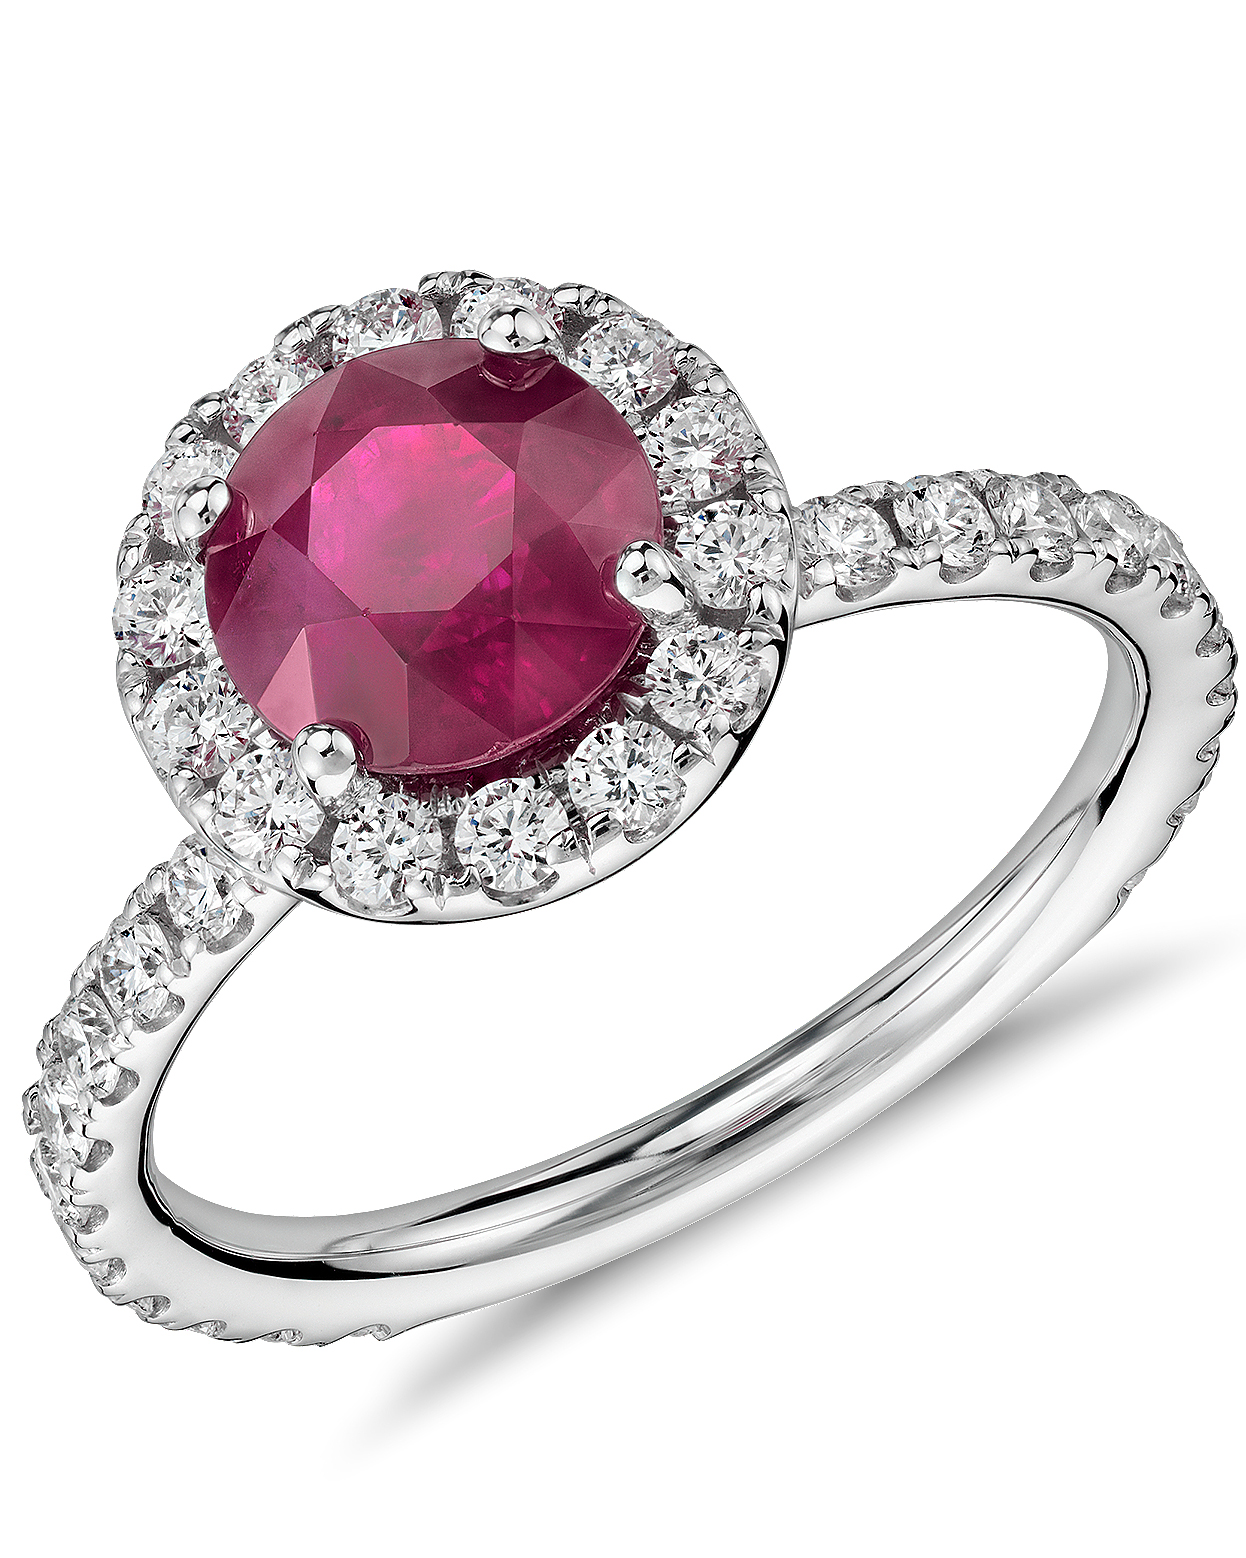 Ruby Engagement Ring with Diamond Pavé Halo